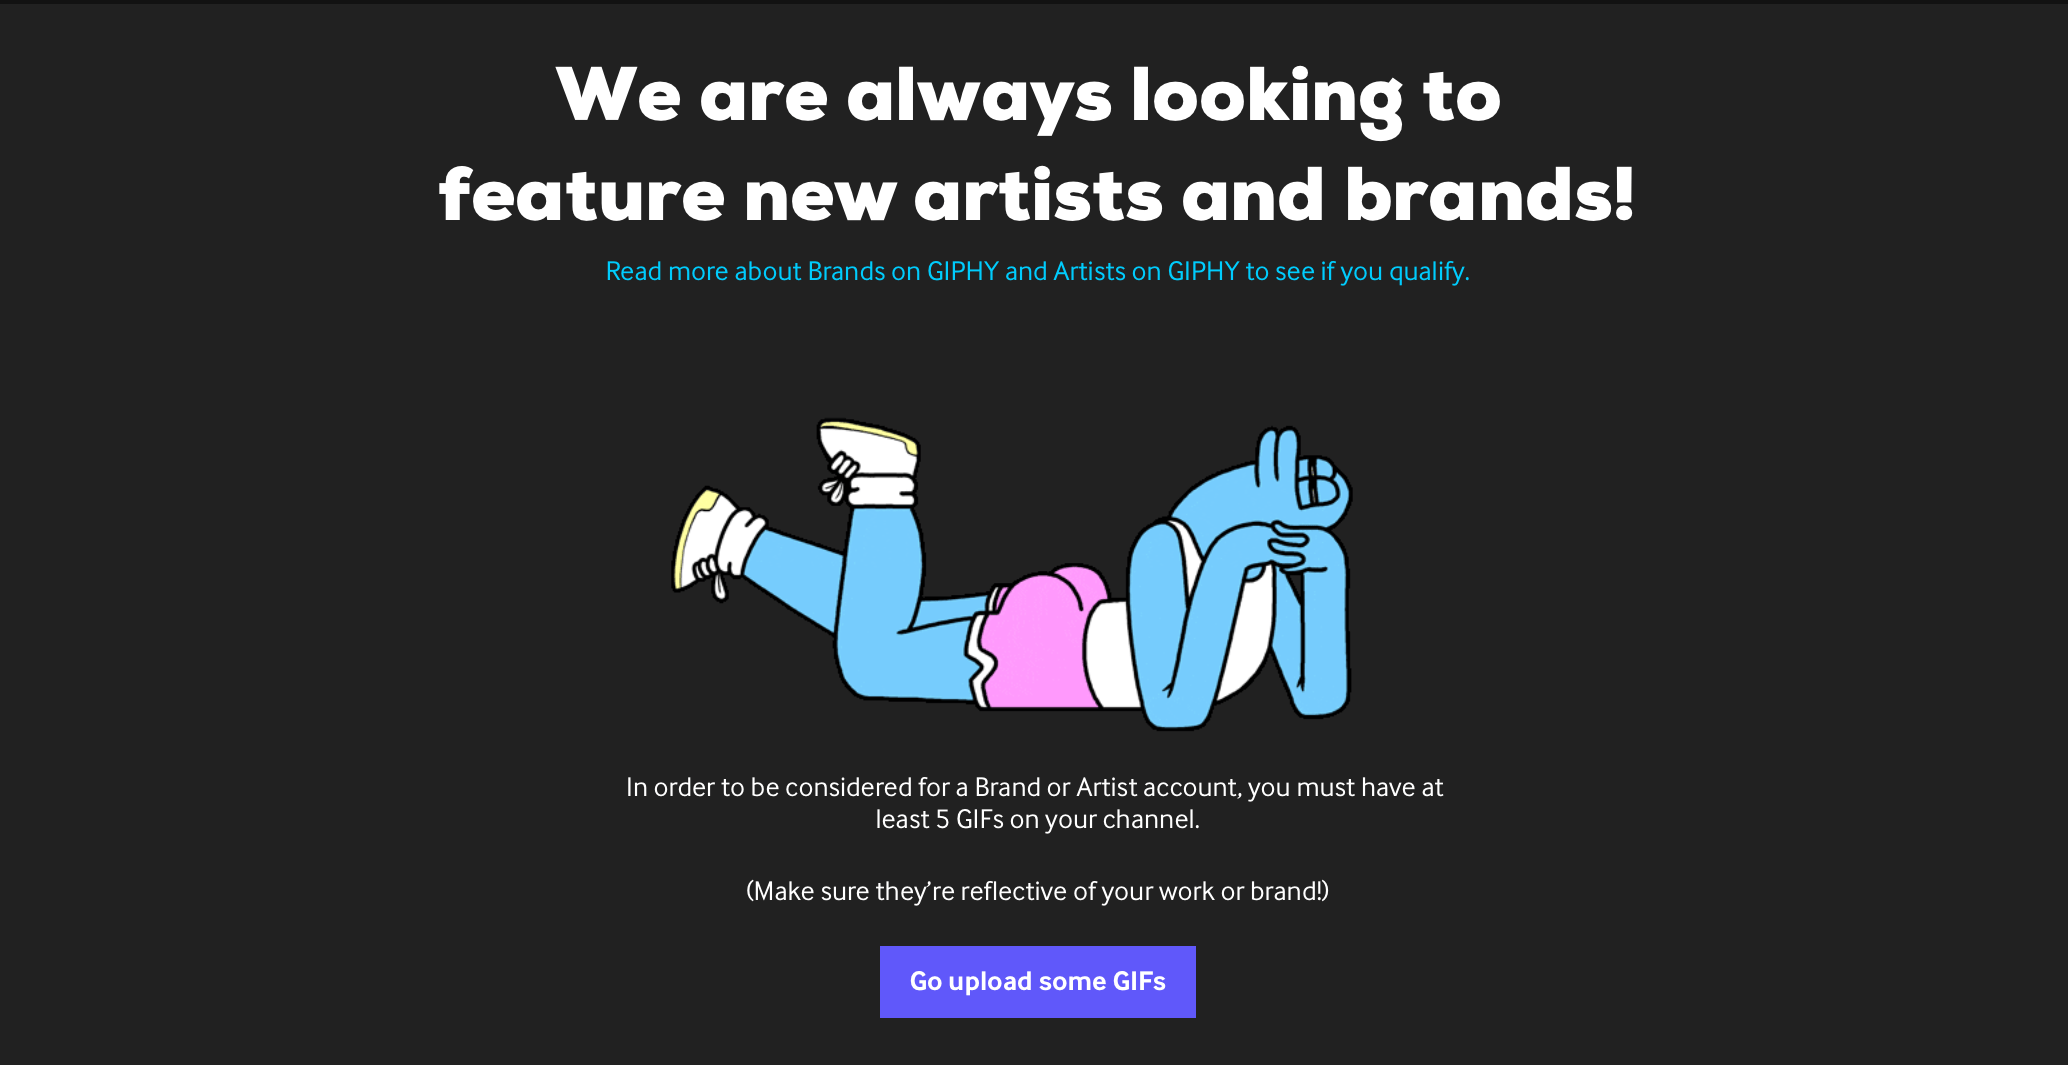 Apply for a brand account on giphy.com